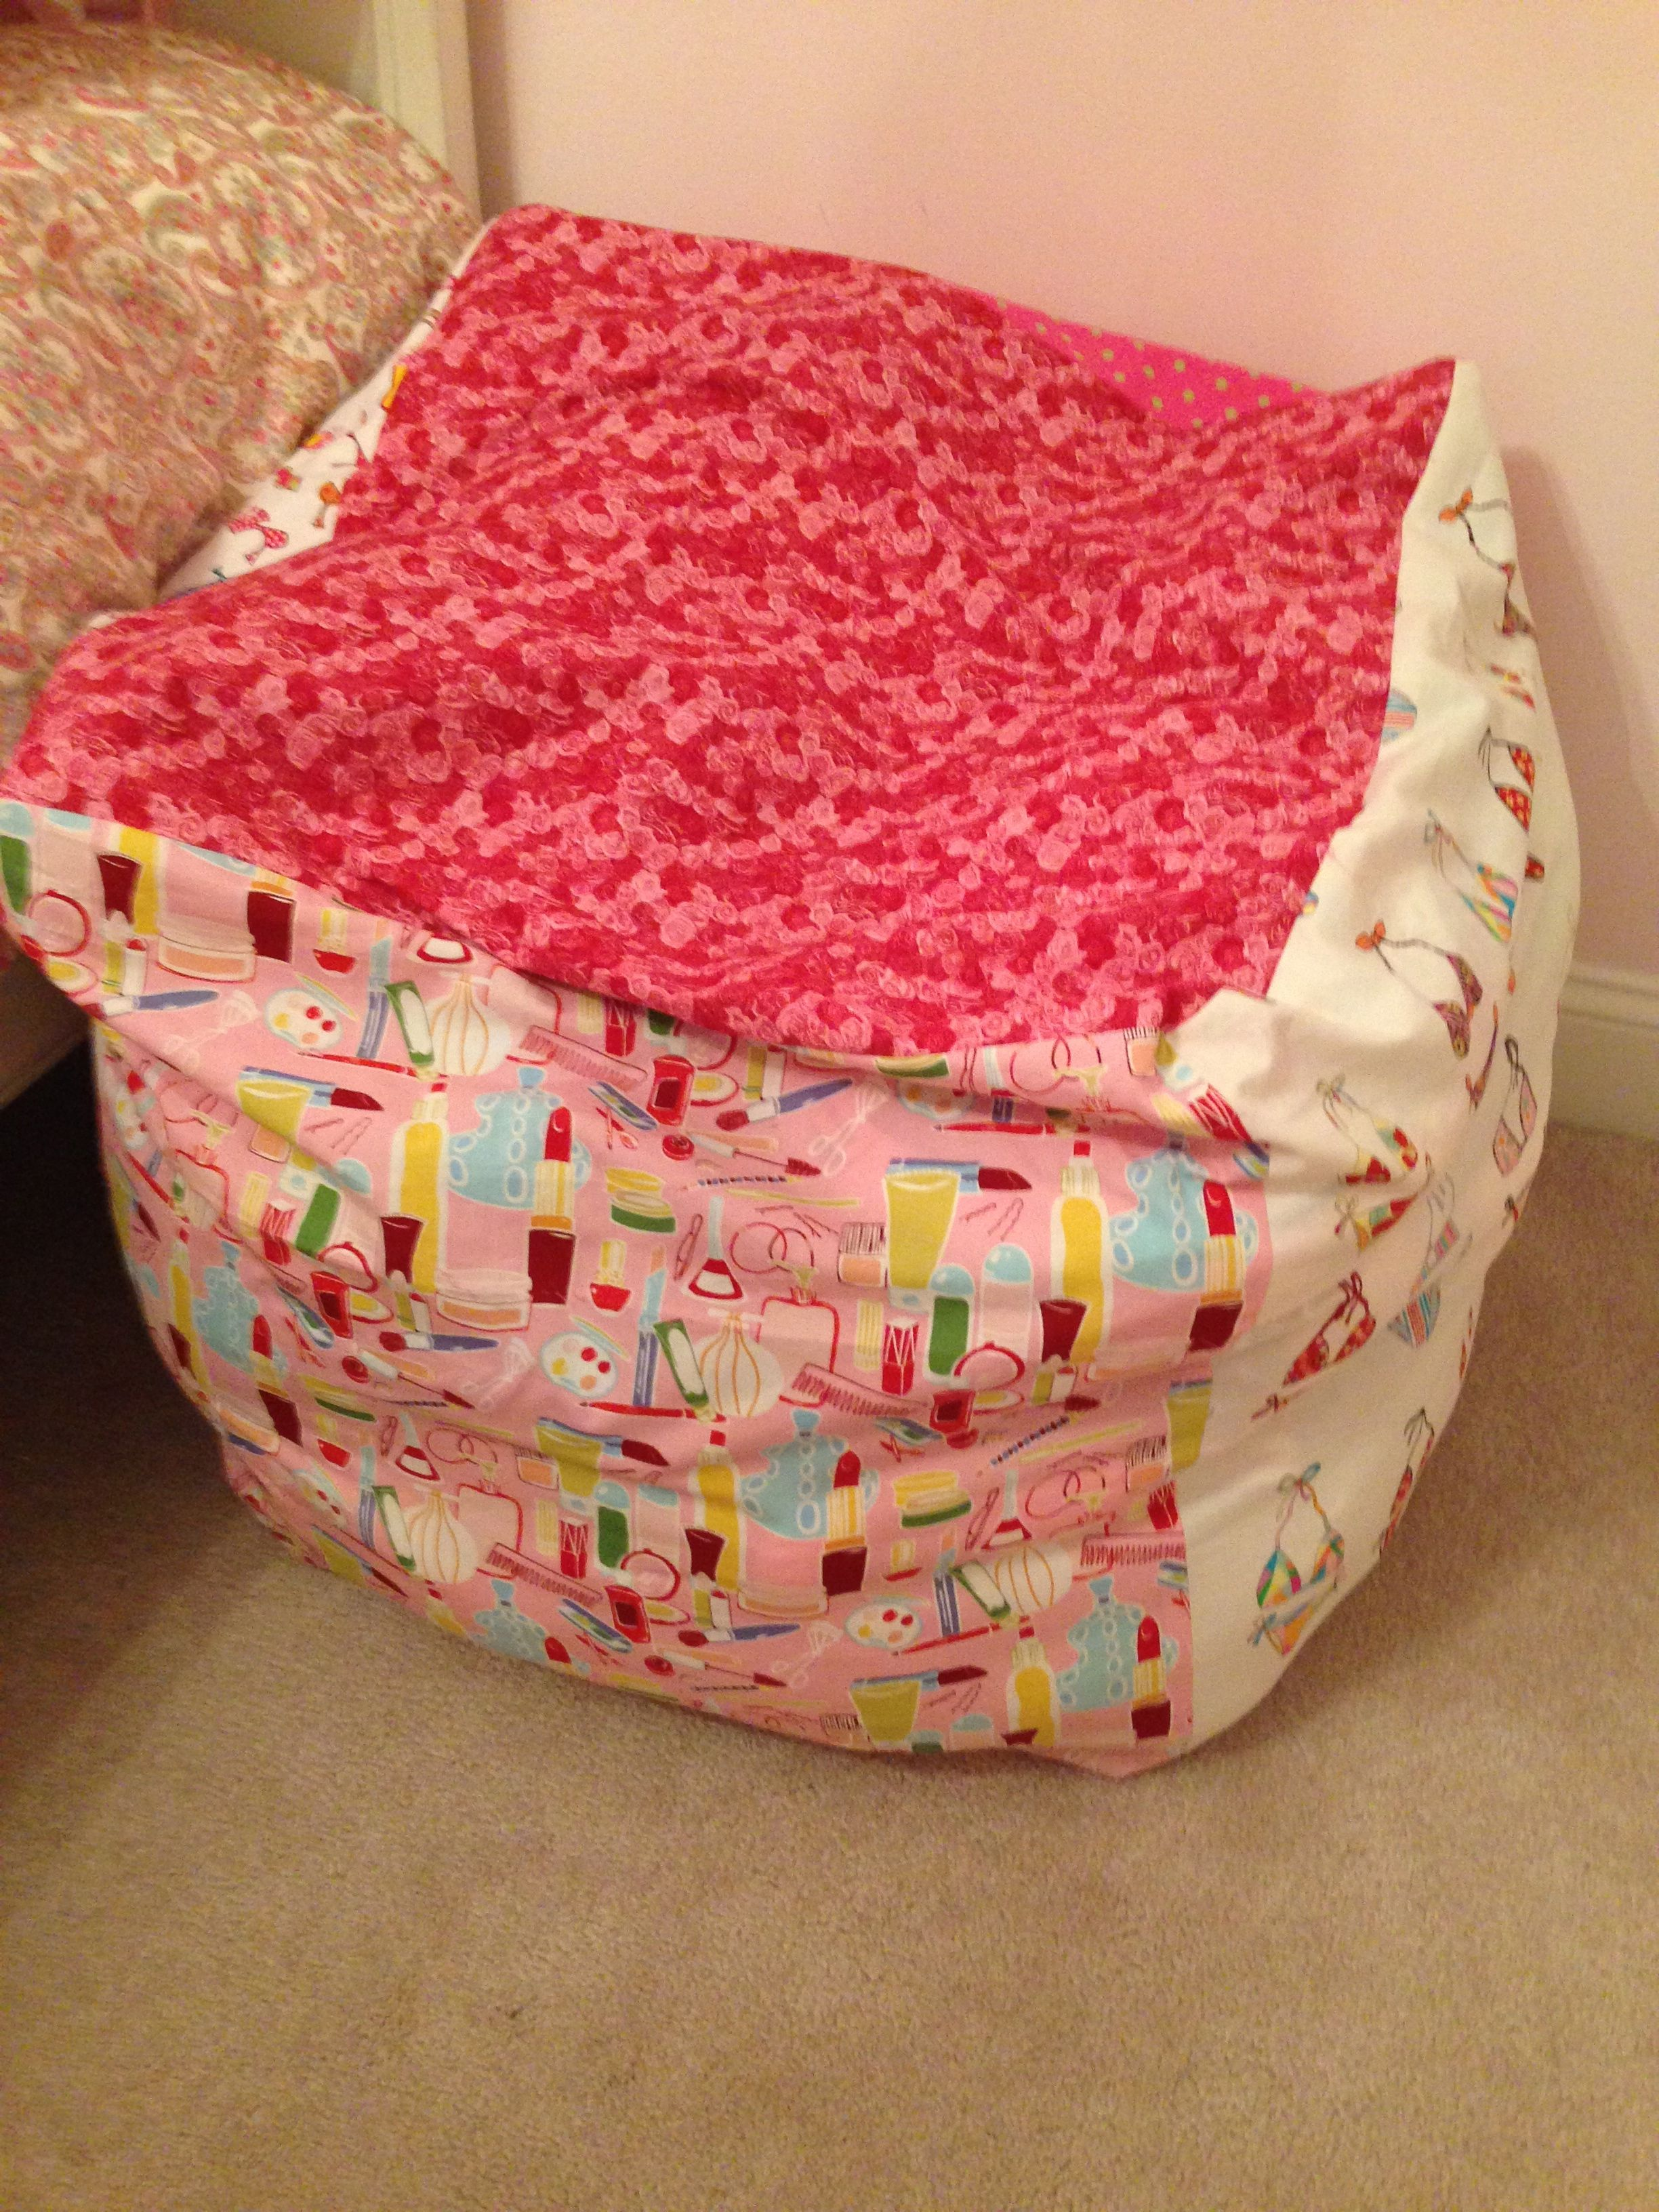 goodness gracious living diy toy bag storage 3 to 6 fabrics 24 36 square sew together w. Black Bedroom Furniture Sets. Home Design Ideas